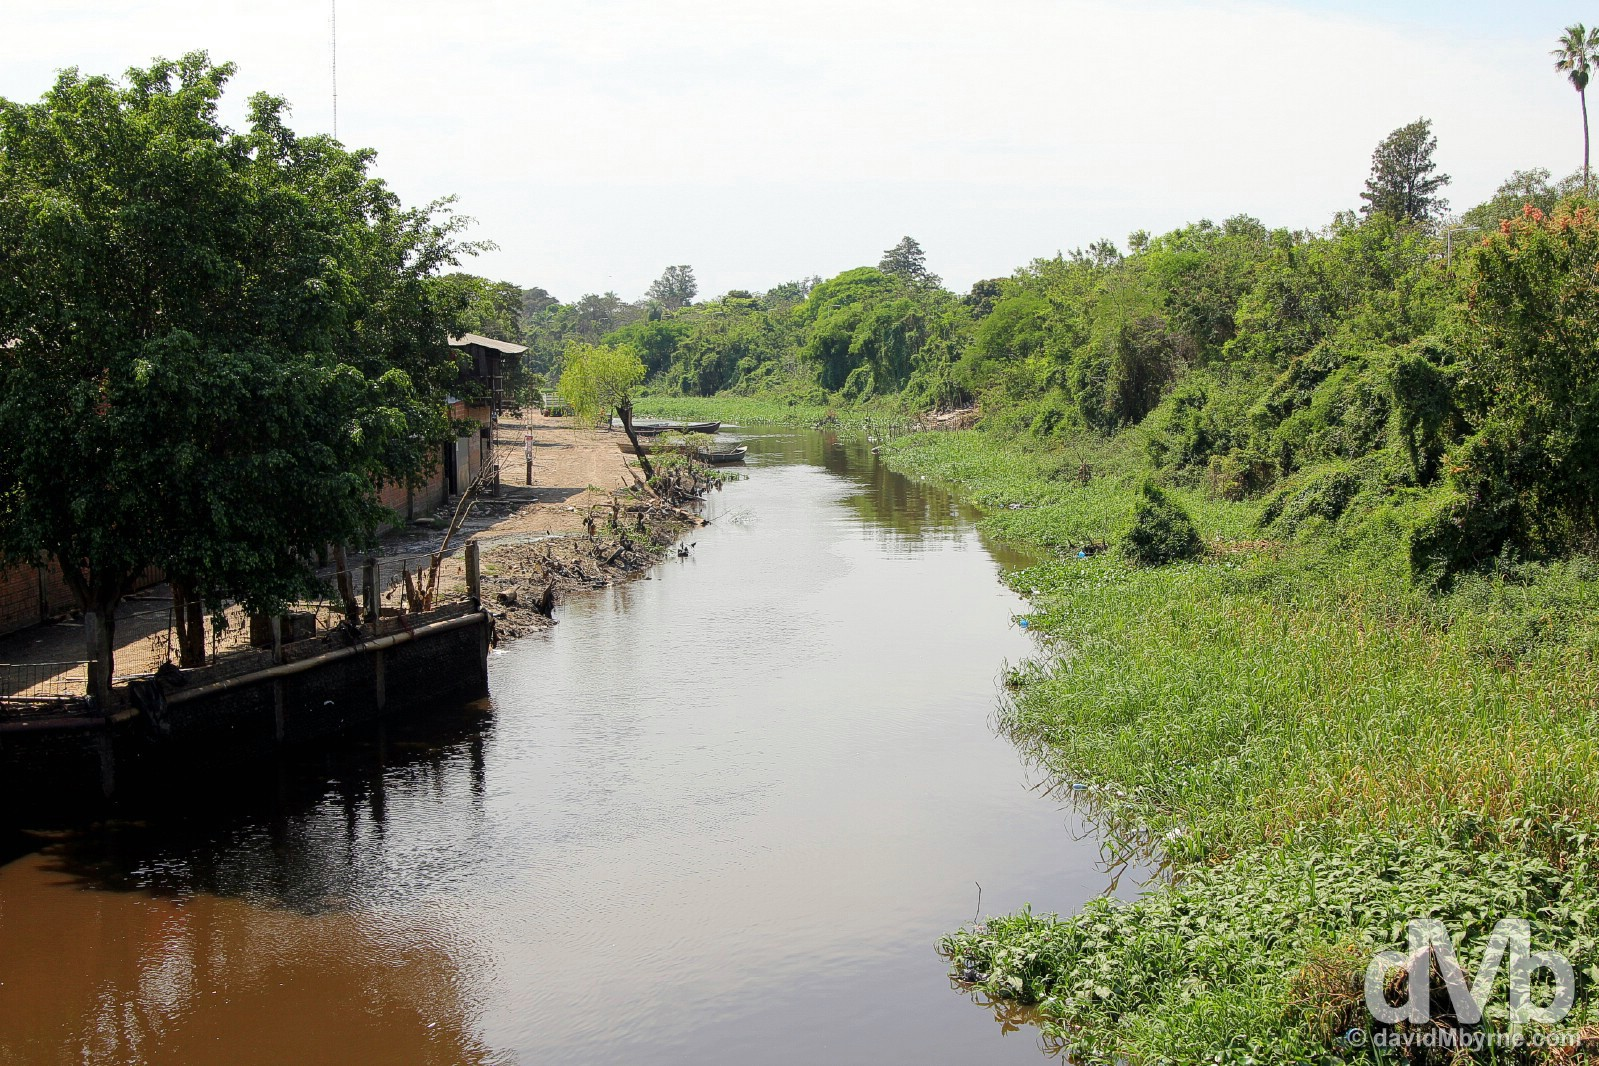 A stream/river marking the Argentina (right) - Paraguay (left) border crossing outside the Argentine town of Clorinda, northeast Argentina. September 8, 2015.